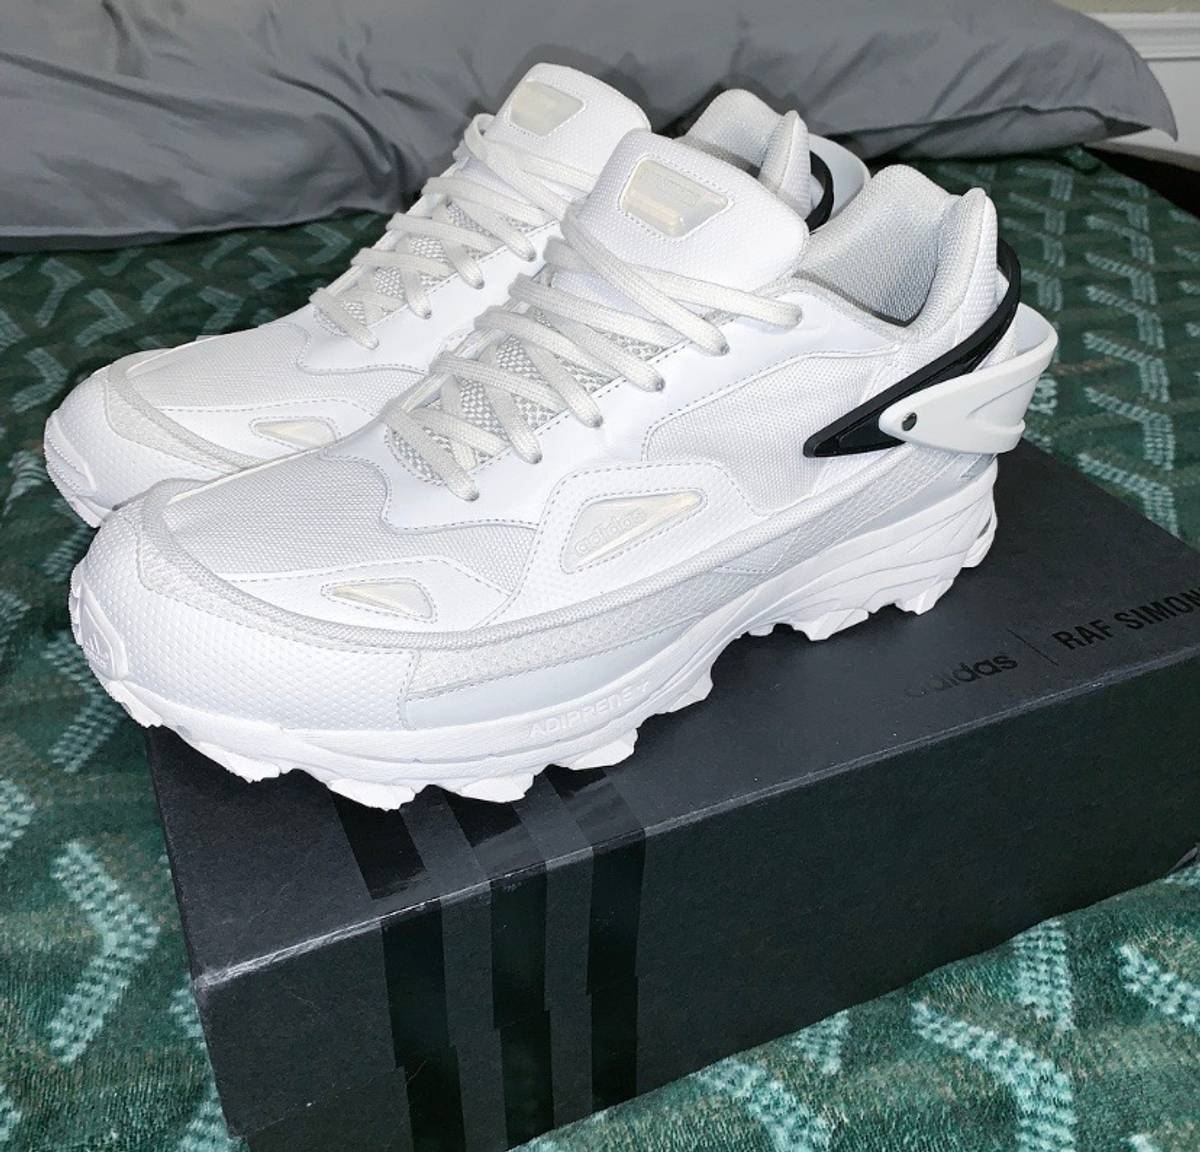 adidas By Raf Simons Synthetic Response Trail Robot Sneakers